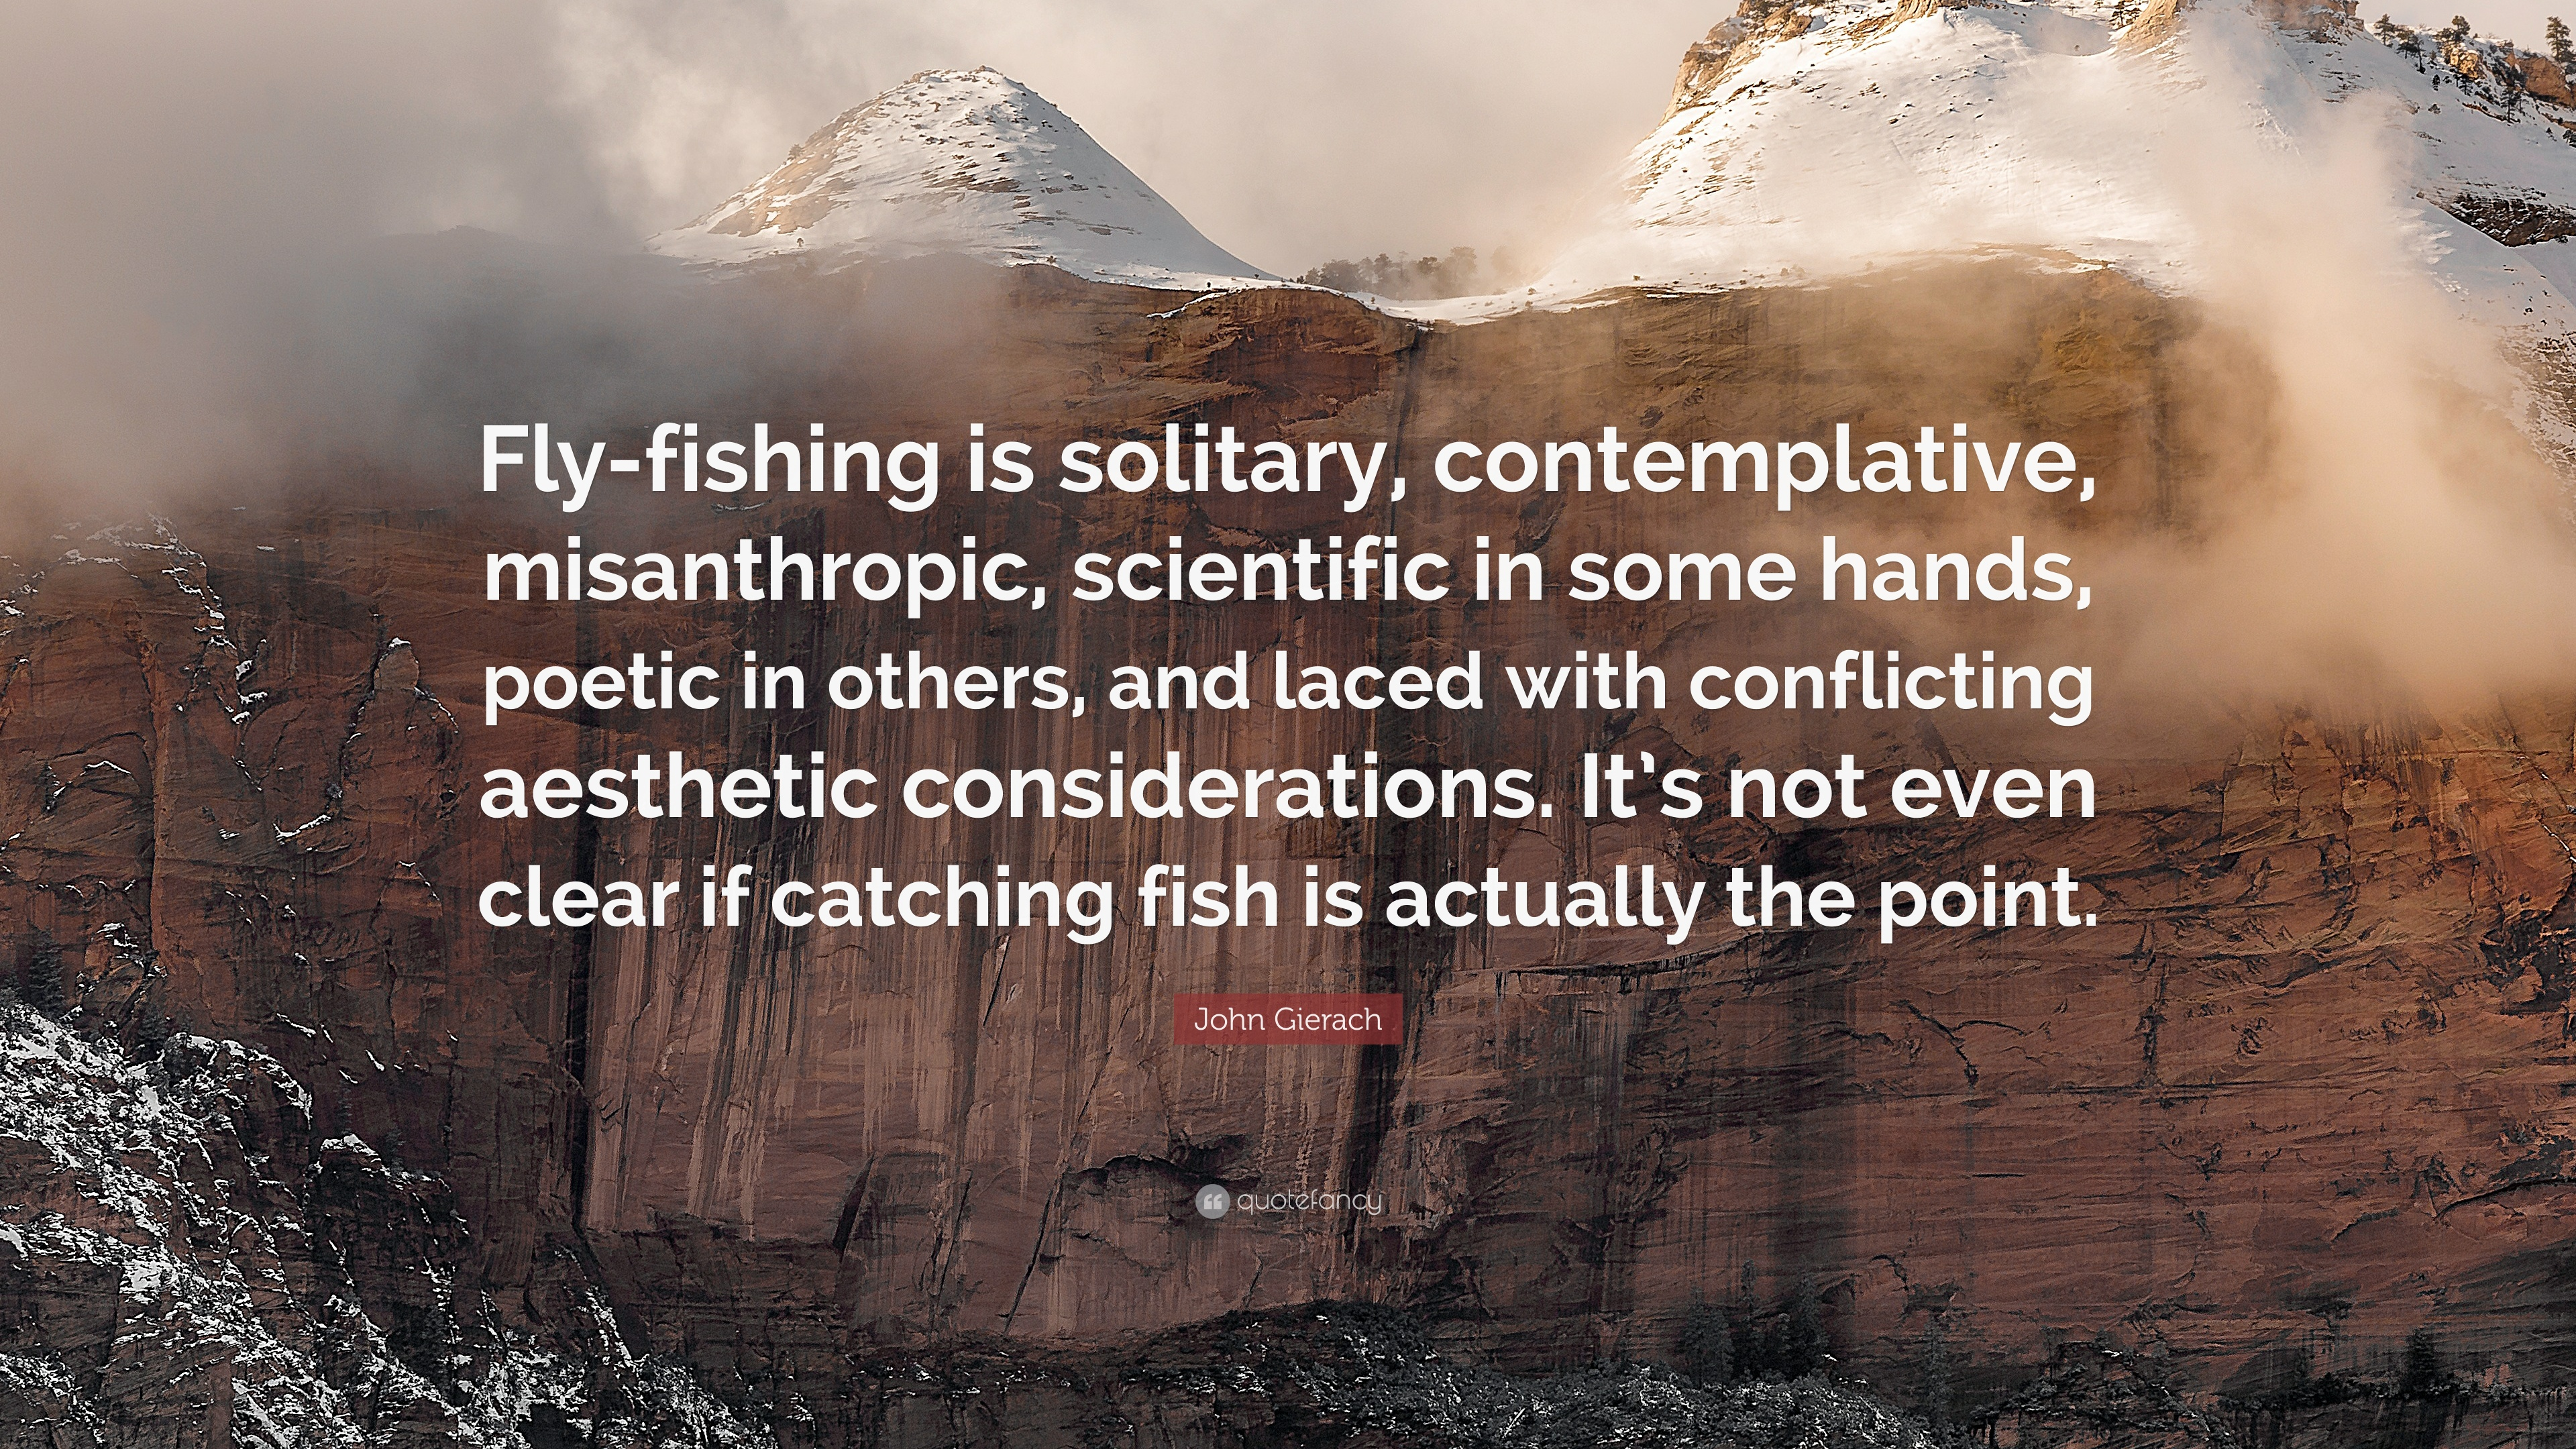 Love Fishing Quotes John Gierach Quotes 28 Wallpapers  Quotefancy